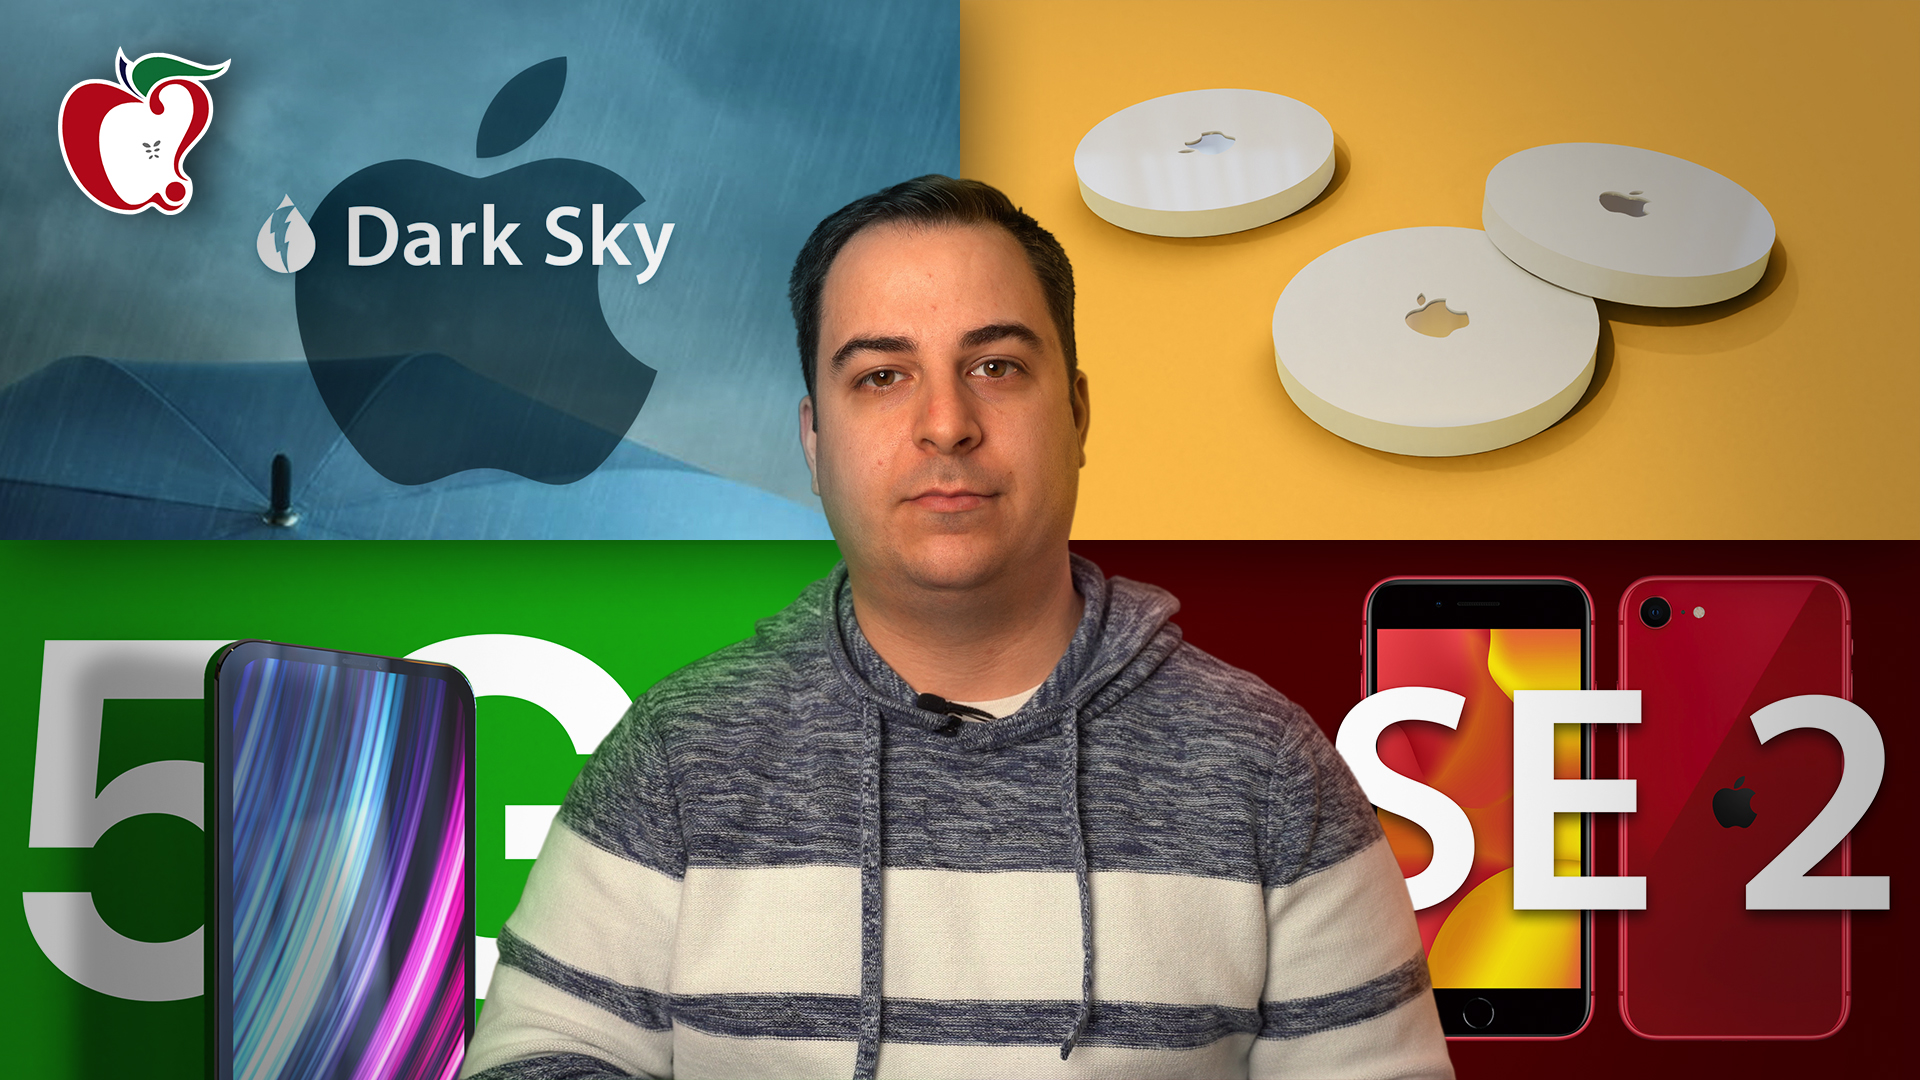 Top Stories: Apple Leaks iPhone SE and AirTags, Apple Buys Dark Sky, and More - MacRumors